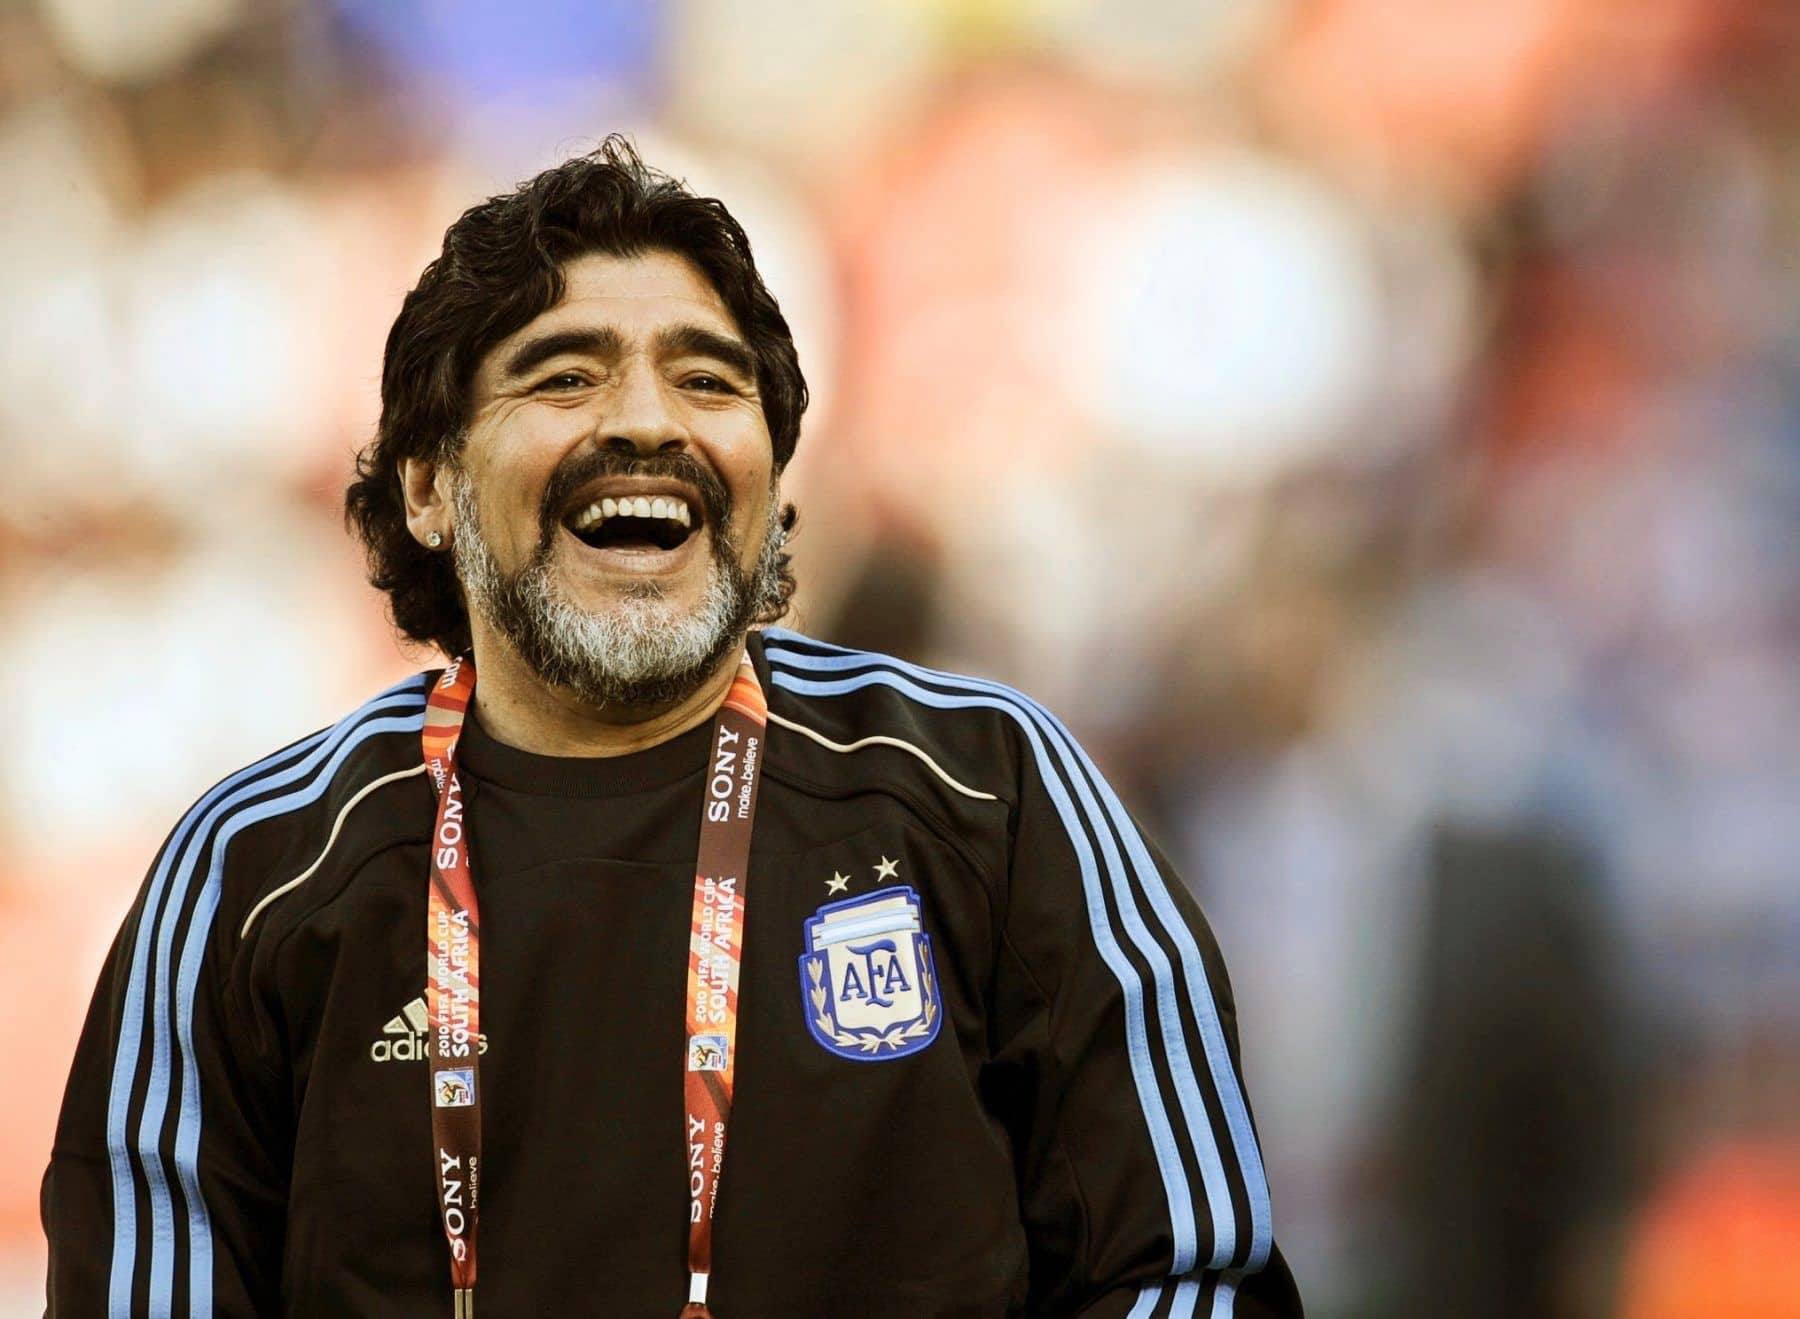 Diego Maradona Set to Revive Coaching Career in Argentina After FIFA World  Cup 2010 Debacle, Signs Deal With First Division Club Gimnasia y Esgrima